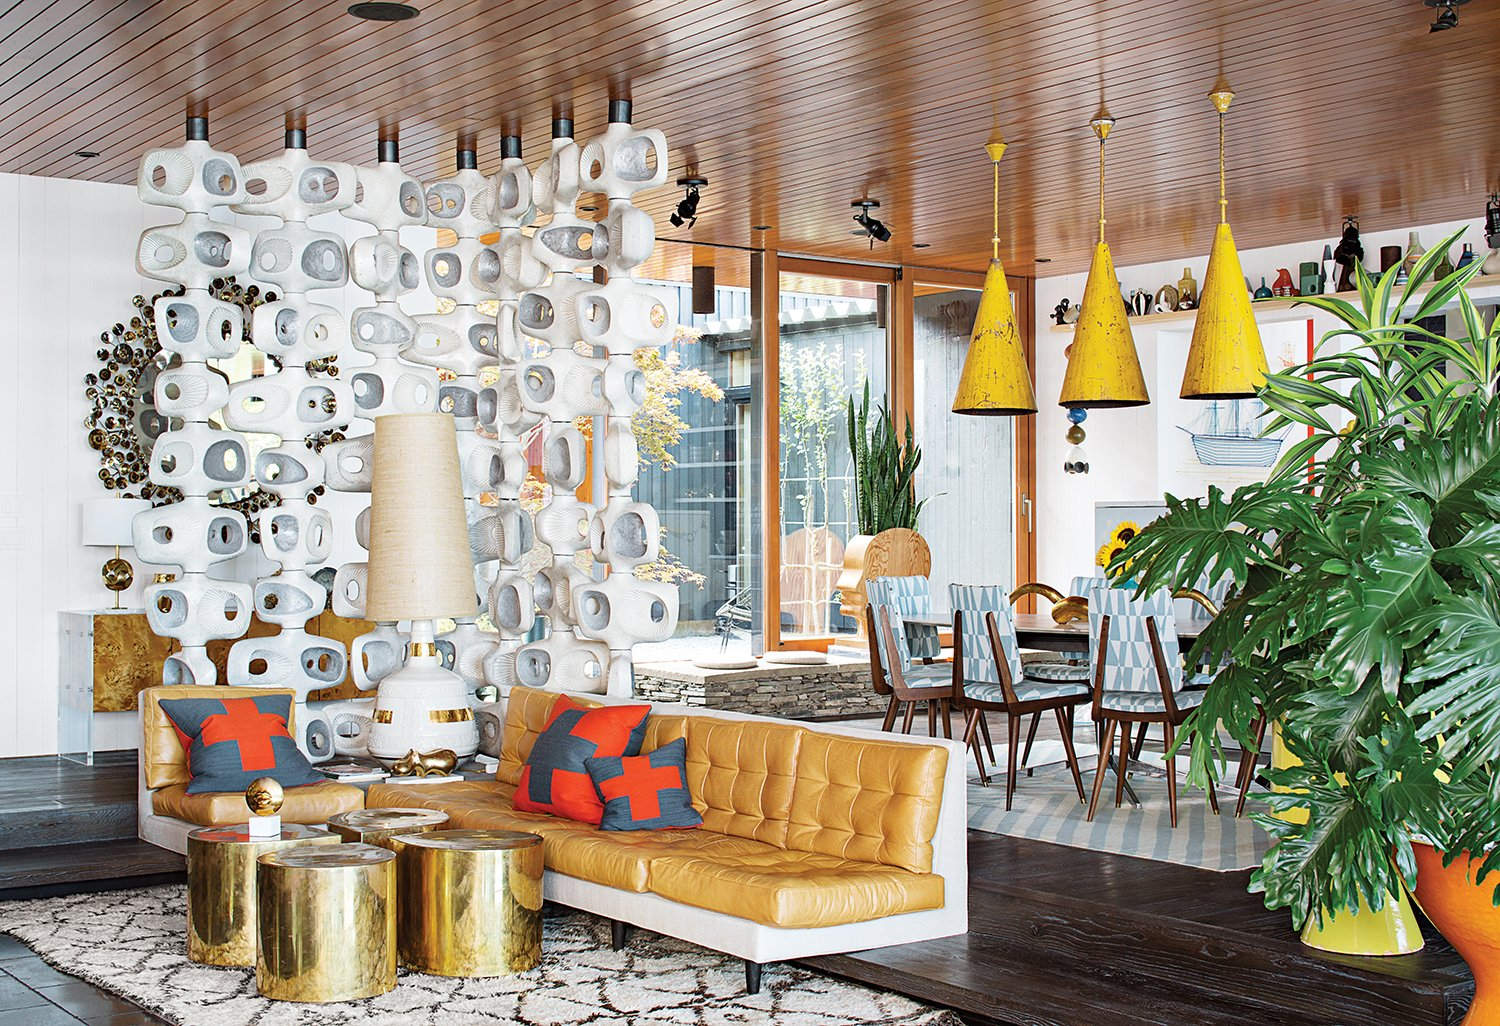 """The vibe feels cozy even though the living room is quite grand,"" Adler says. He made the room divider out of concrete and integrated the sofa with the step. Lee Jofa fabric covers the dining chairs and the pendants are vintage."